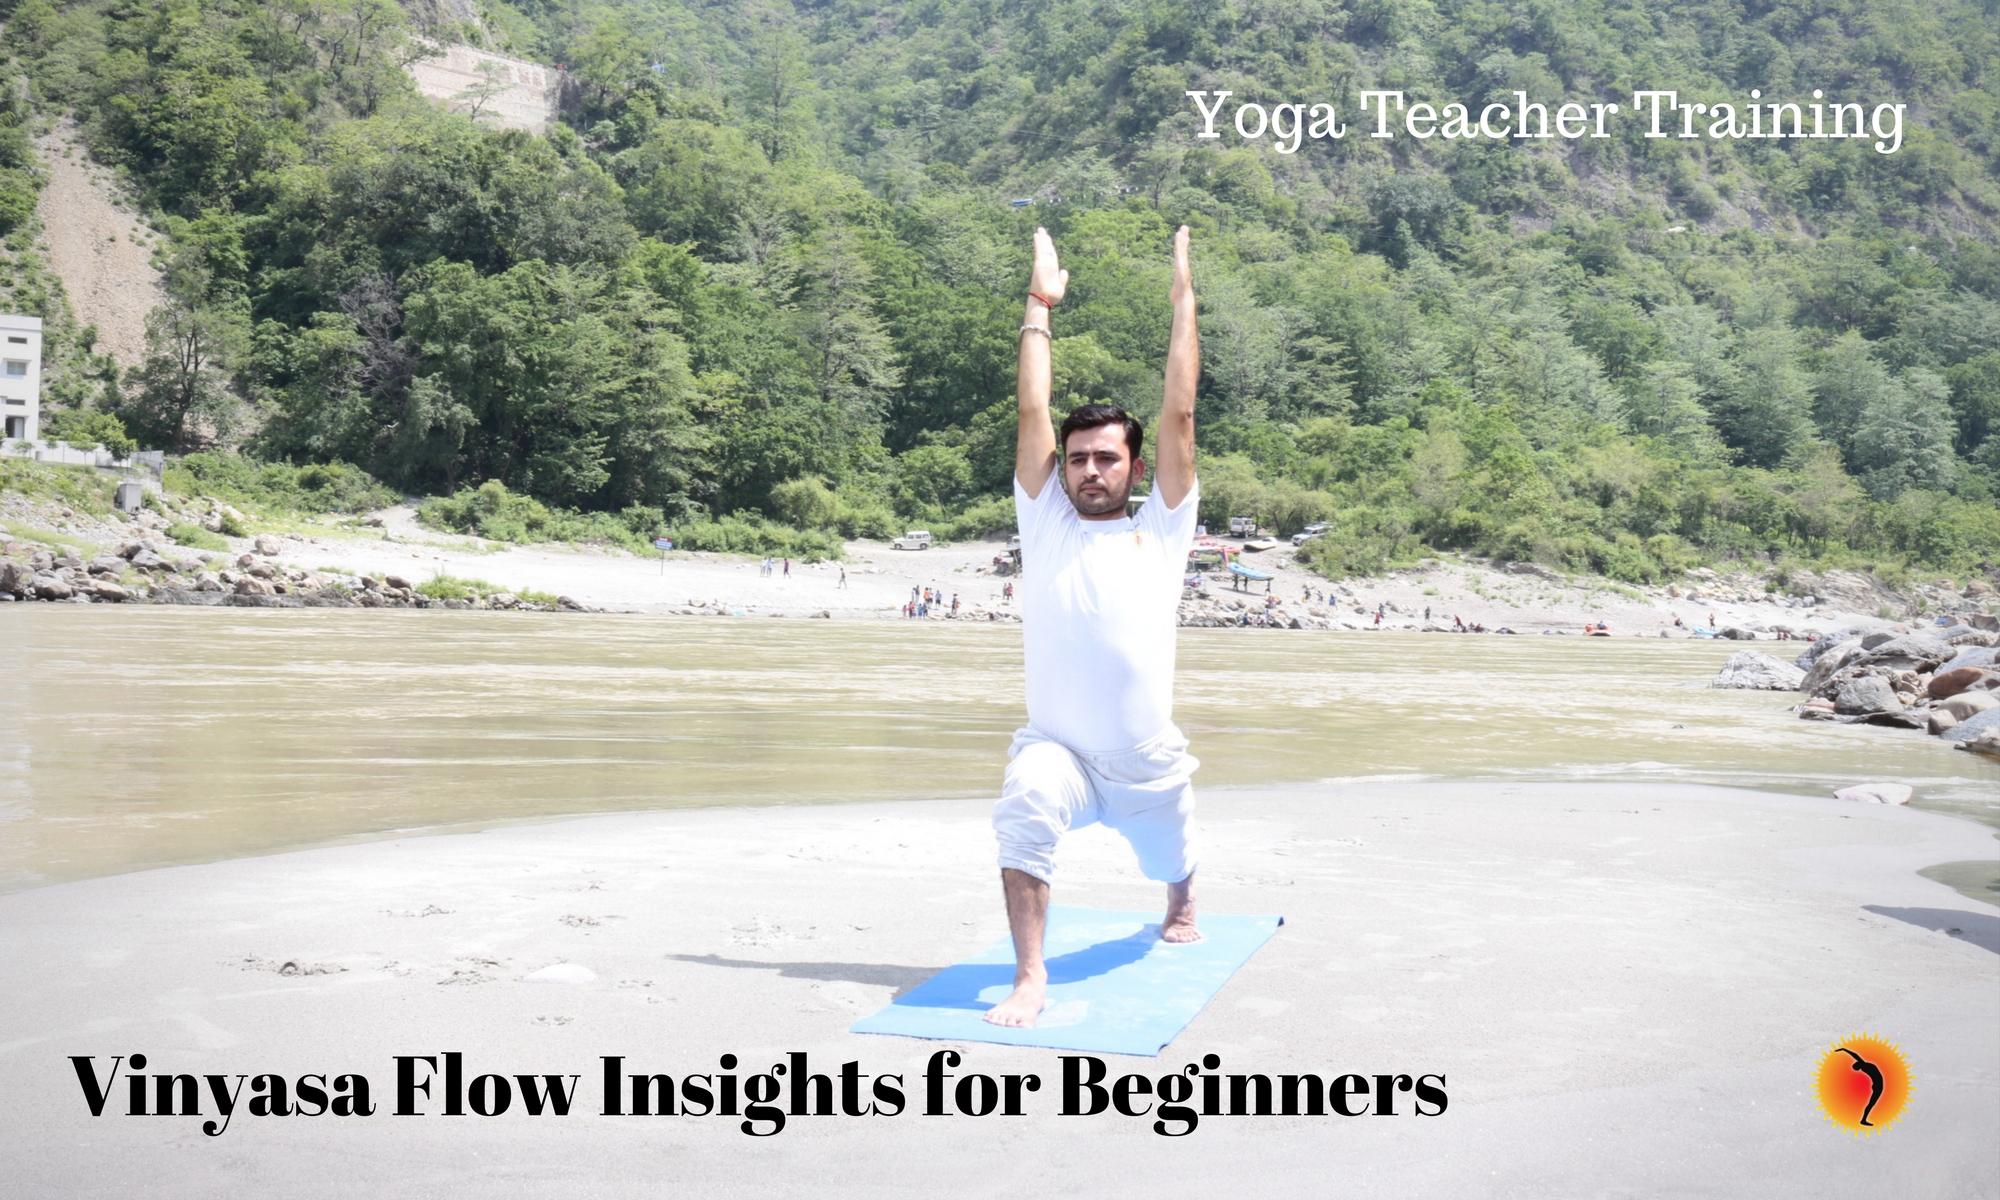 Vinyasa Flow Insights for Beginners